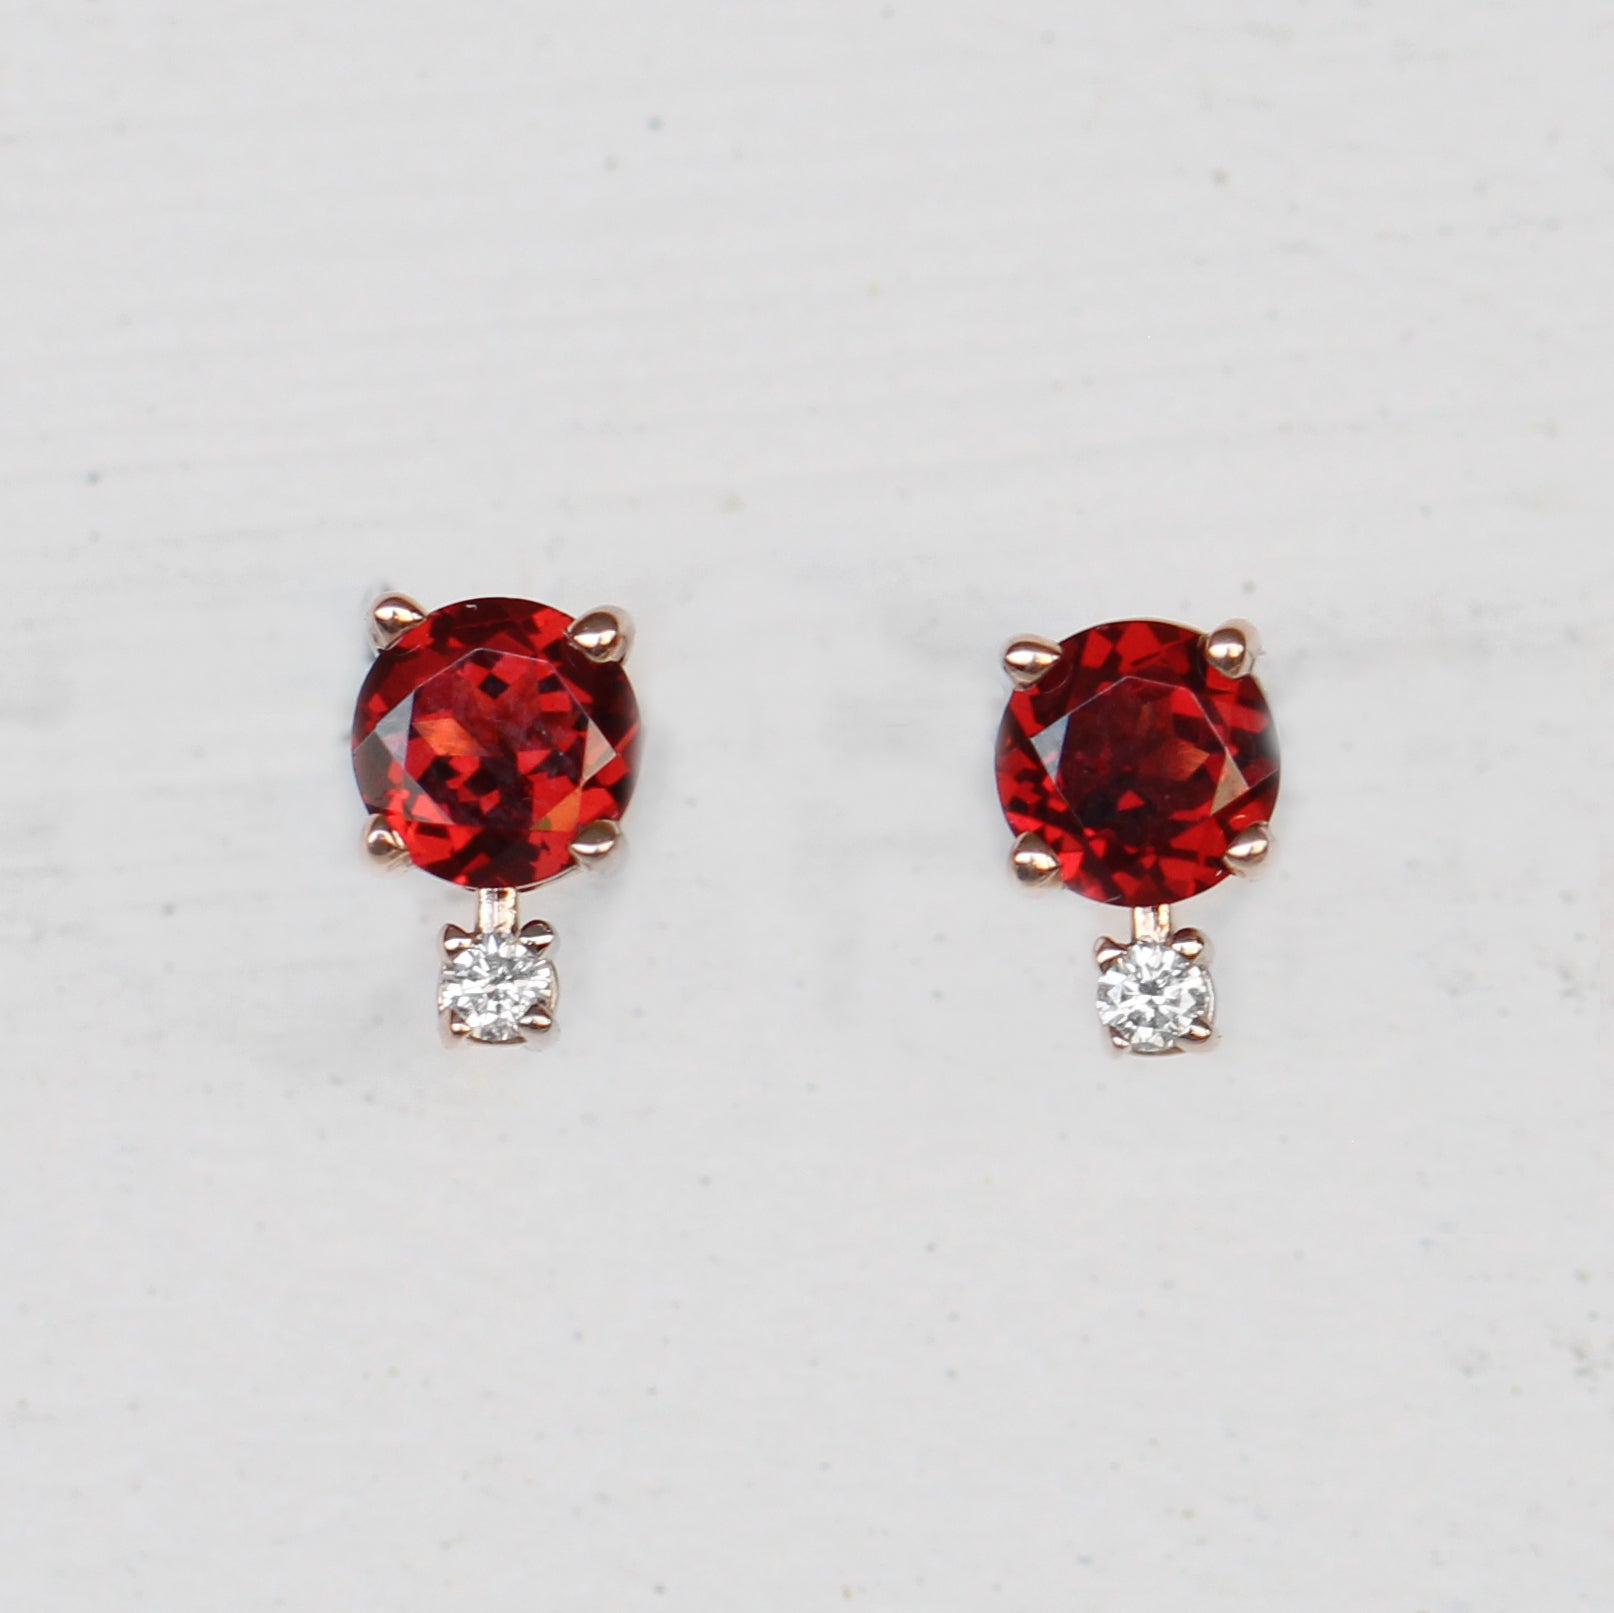 Joanna Earring with Garnet and Diamond Accent - 14k Rose Gold - Made to Order - Celestial Diamonds ® by Midwinter Co.